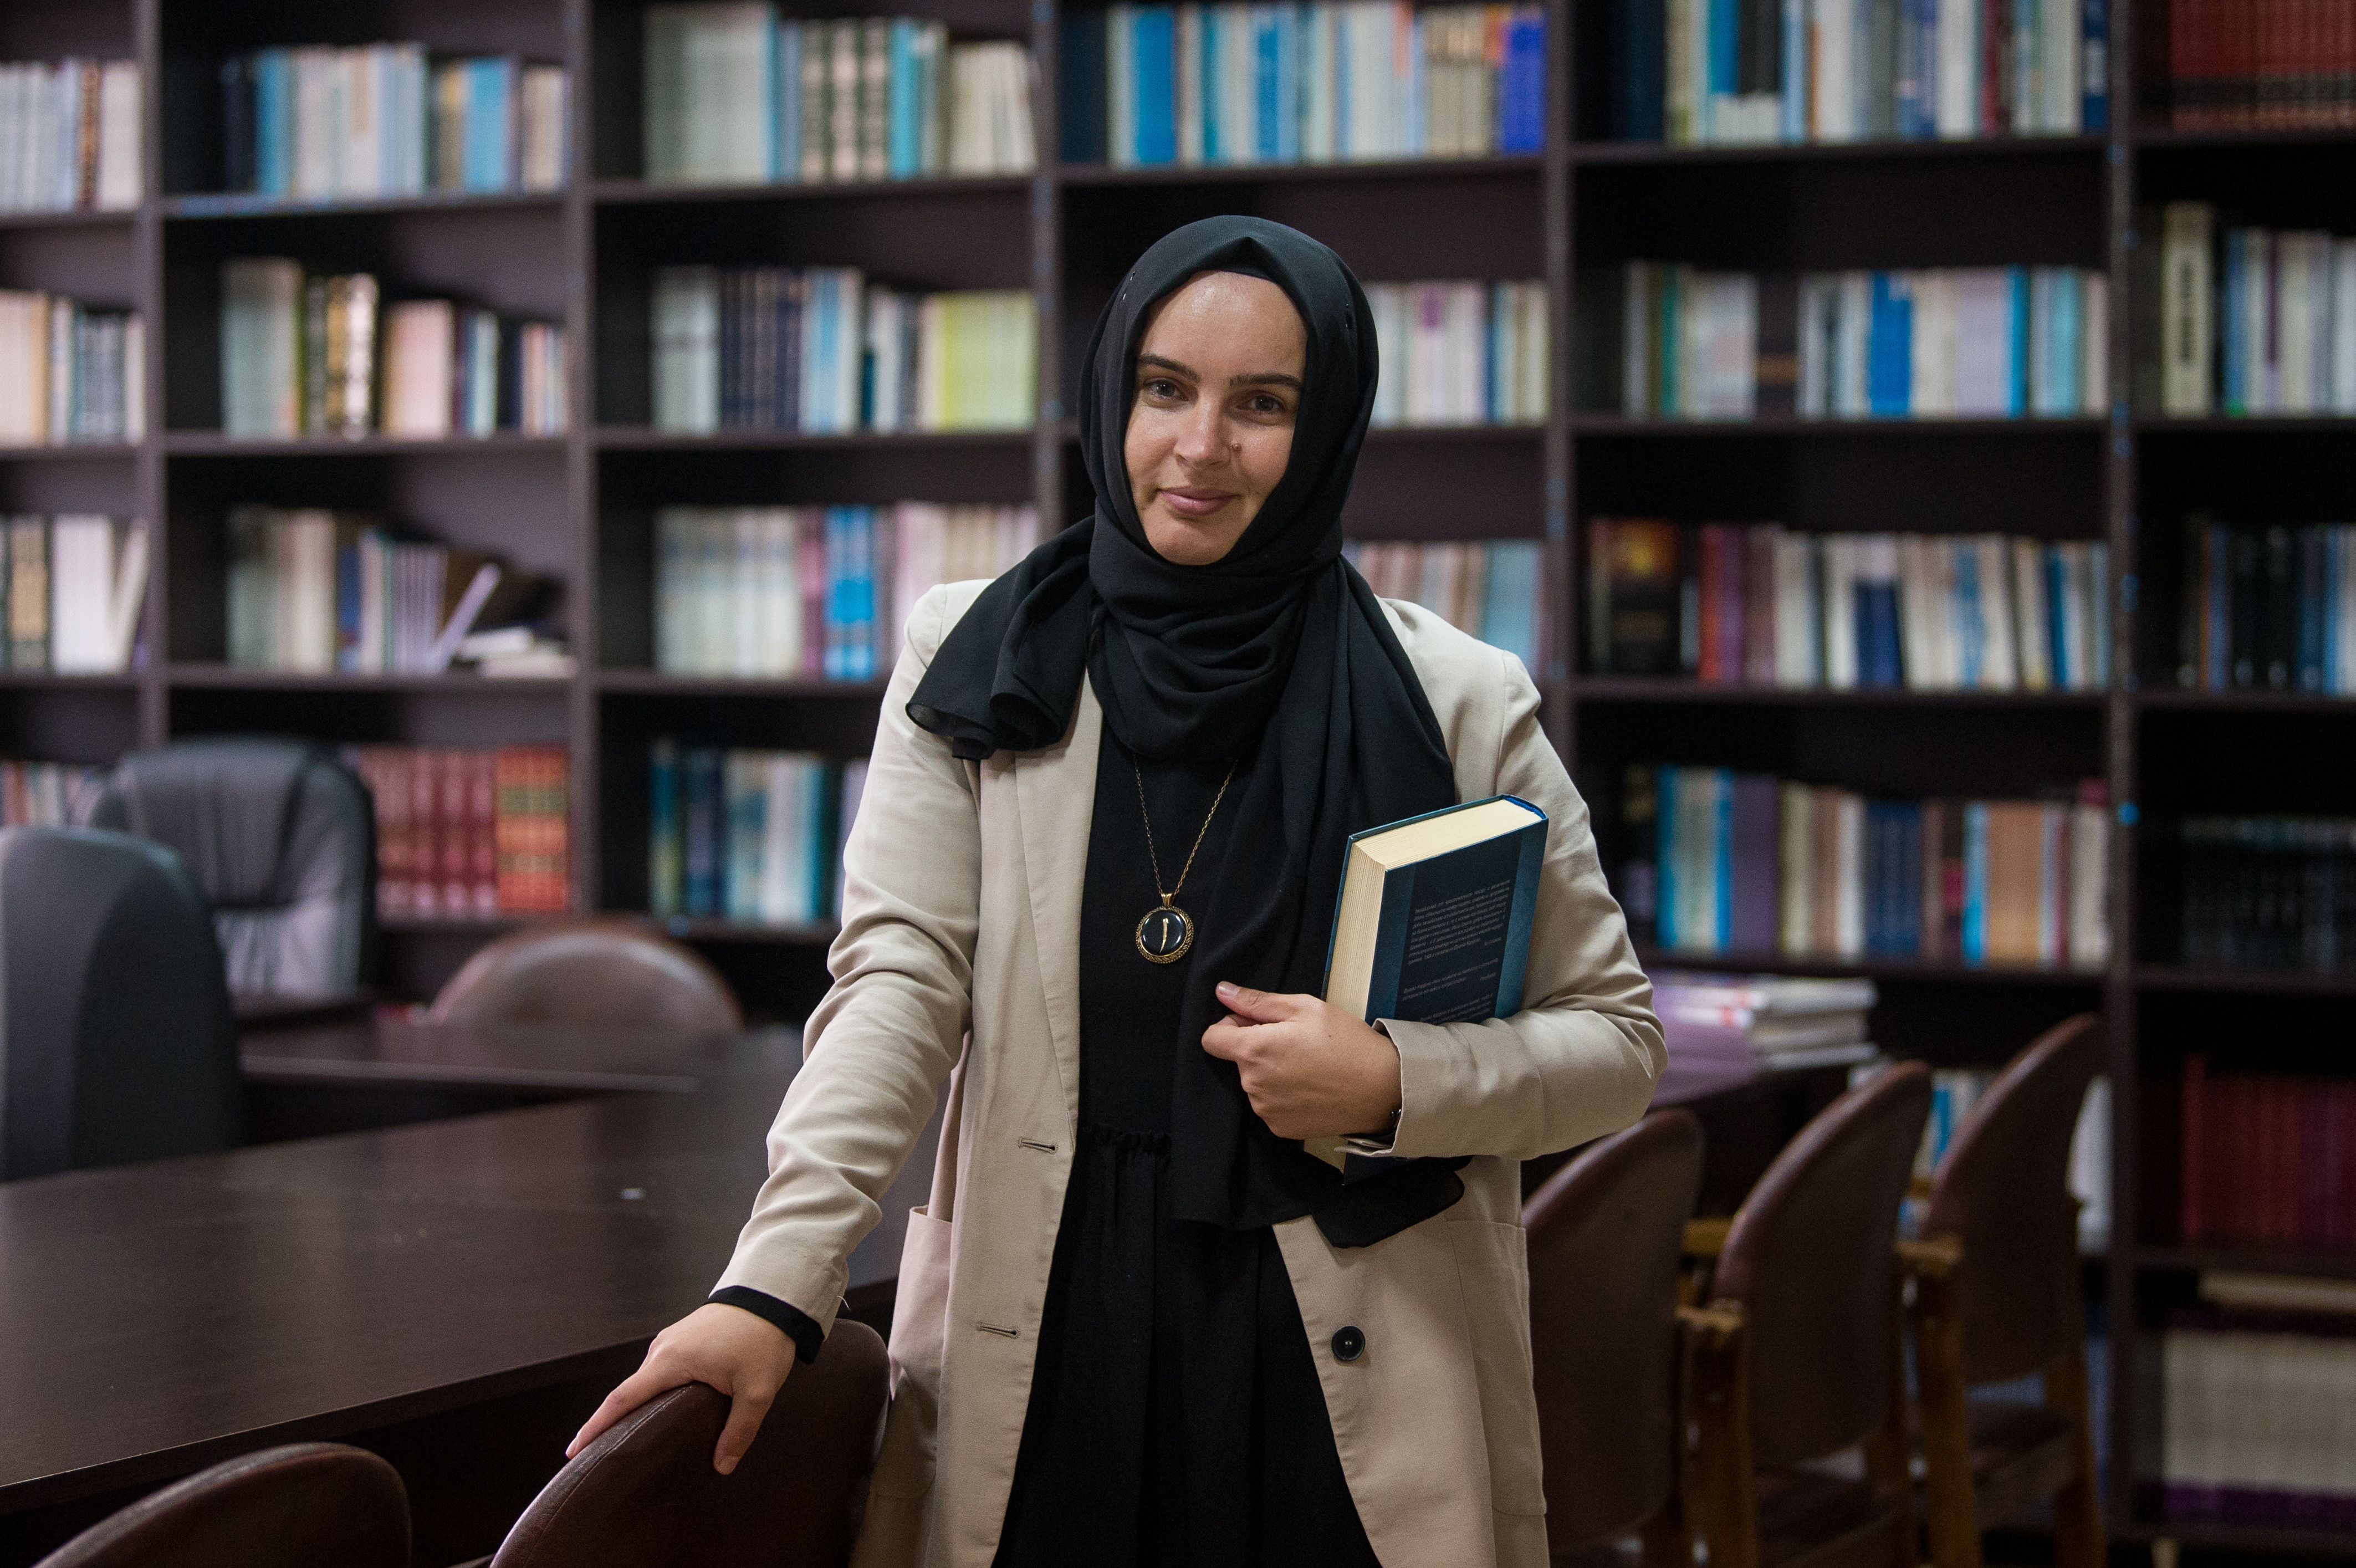 Fikrie Bozova, teacher, posses for a photo in the library of the Muslim Theological School in the town of Momchilgrad on December 6, 2020. NIKOLAY DOYCHINOV for AufRuhr